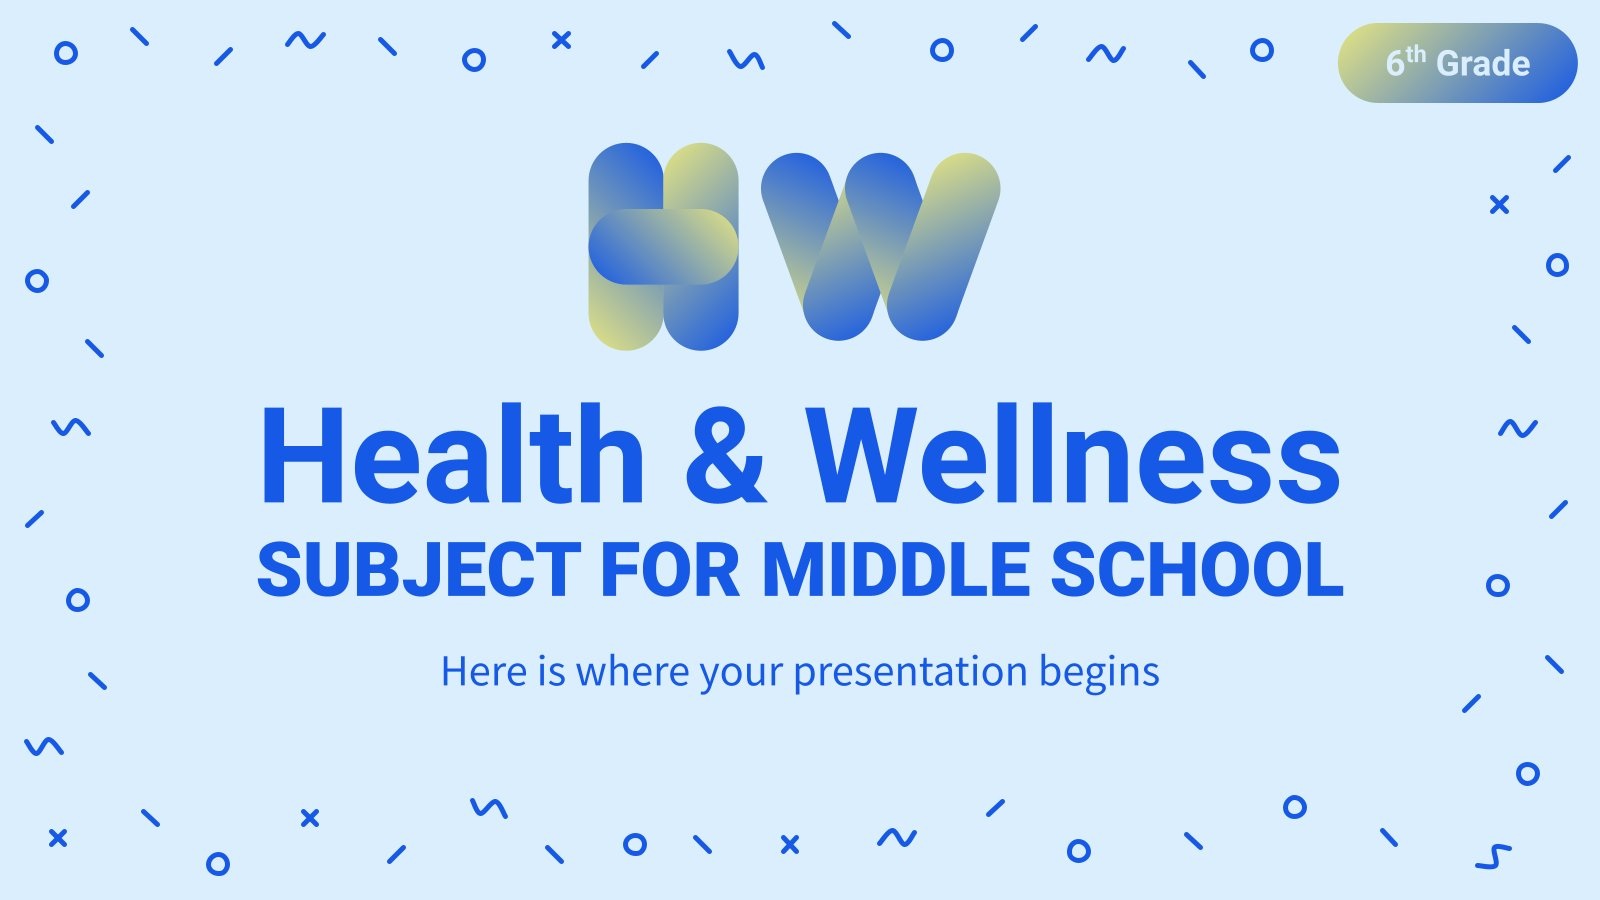 Health & Wellness Subject for Middle School - 6th Grade: Mental, Emotional, and Social Health presentation template